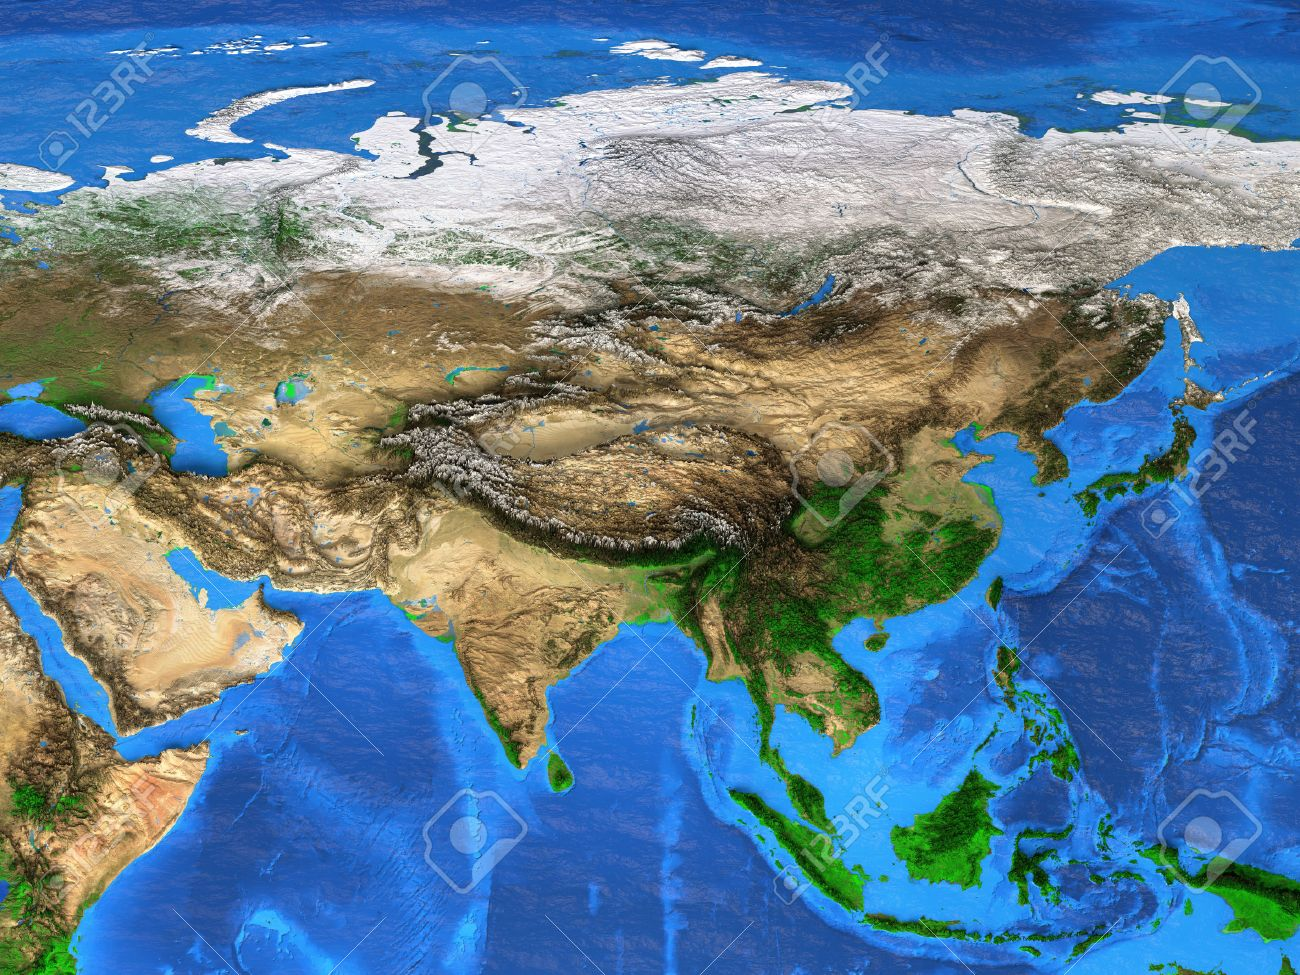 Detailed Satellite View Of The Earth And Its Landforms Asia - Asia satellite map